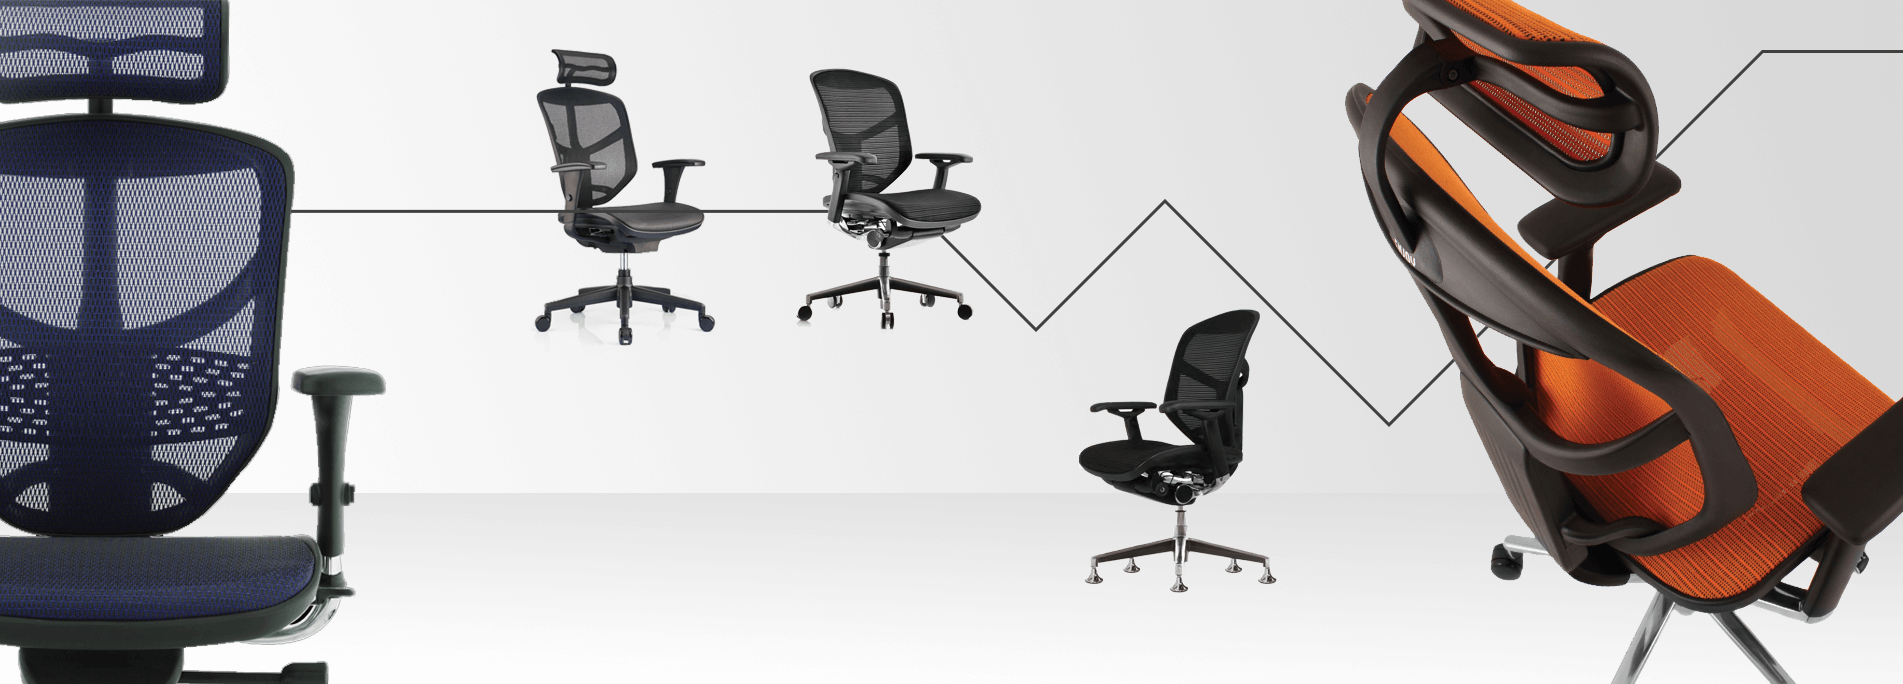 Ergonomic Seating | Ergonomic | Chair | Enjoy